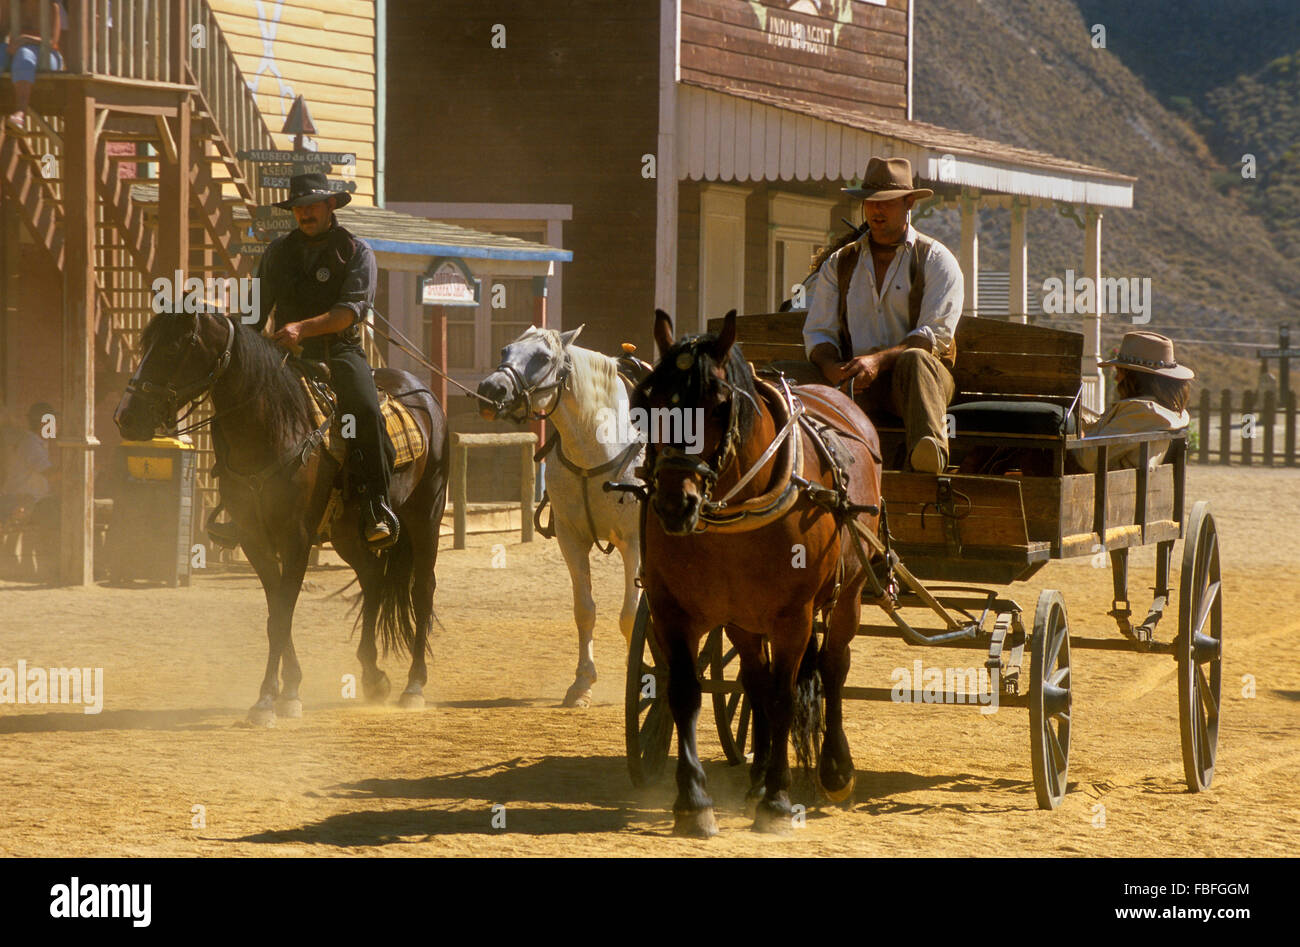 Desert of Tabernas.Actors at Film set of at Mini Hollywood. Almeria province, Andalucia, Spain Stock Photo